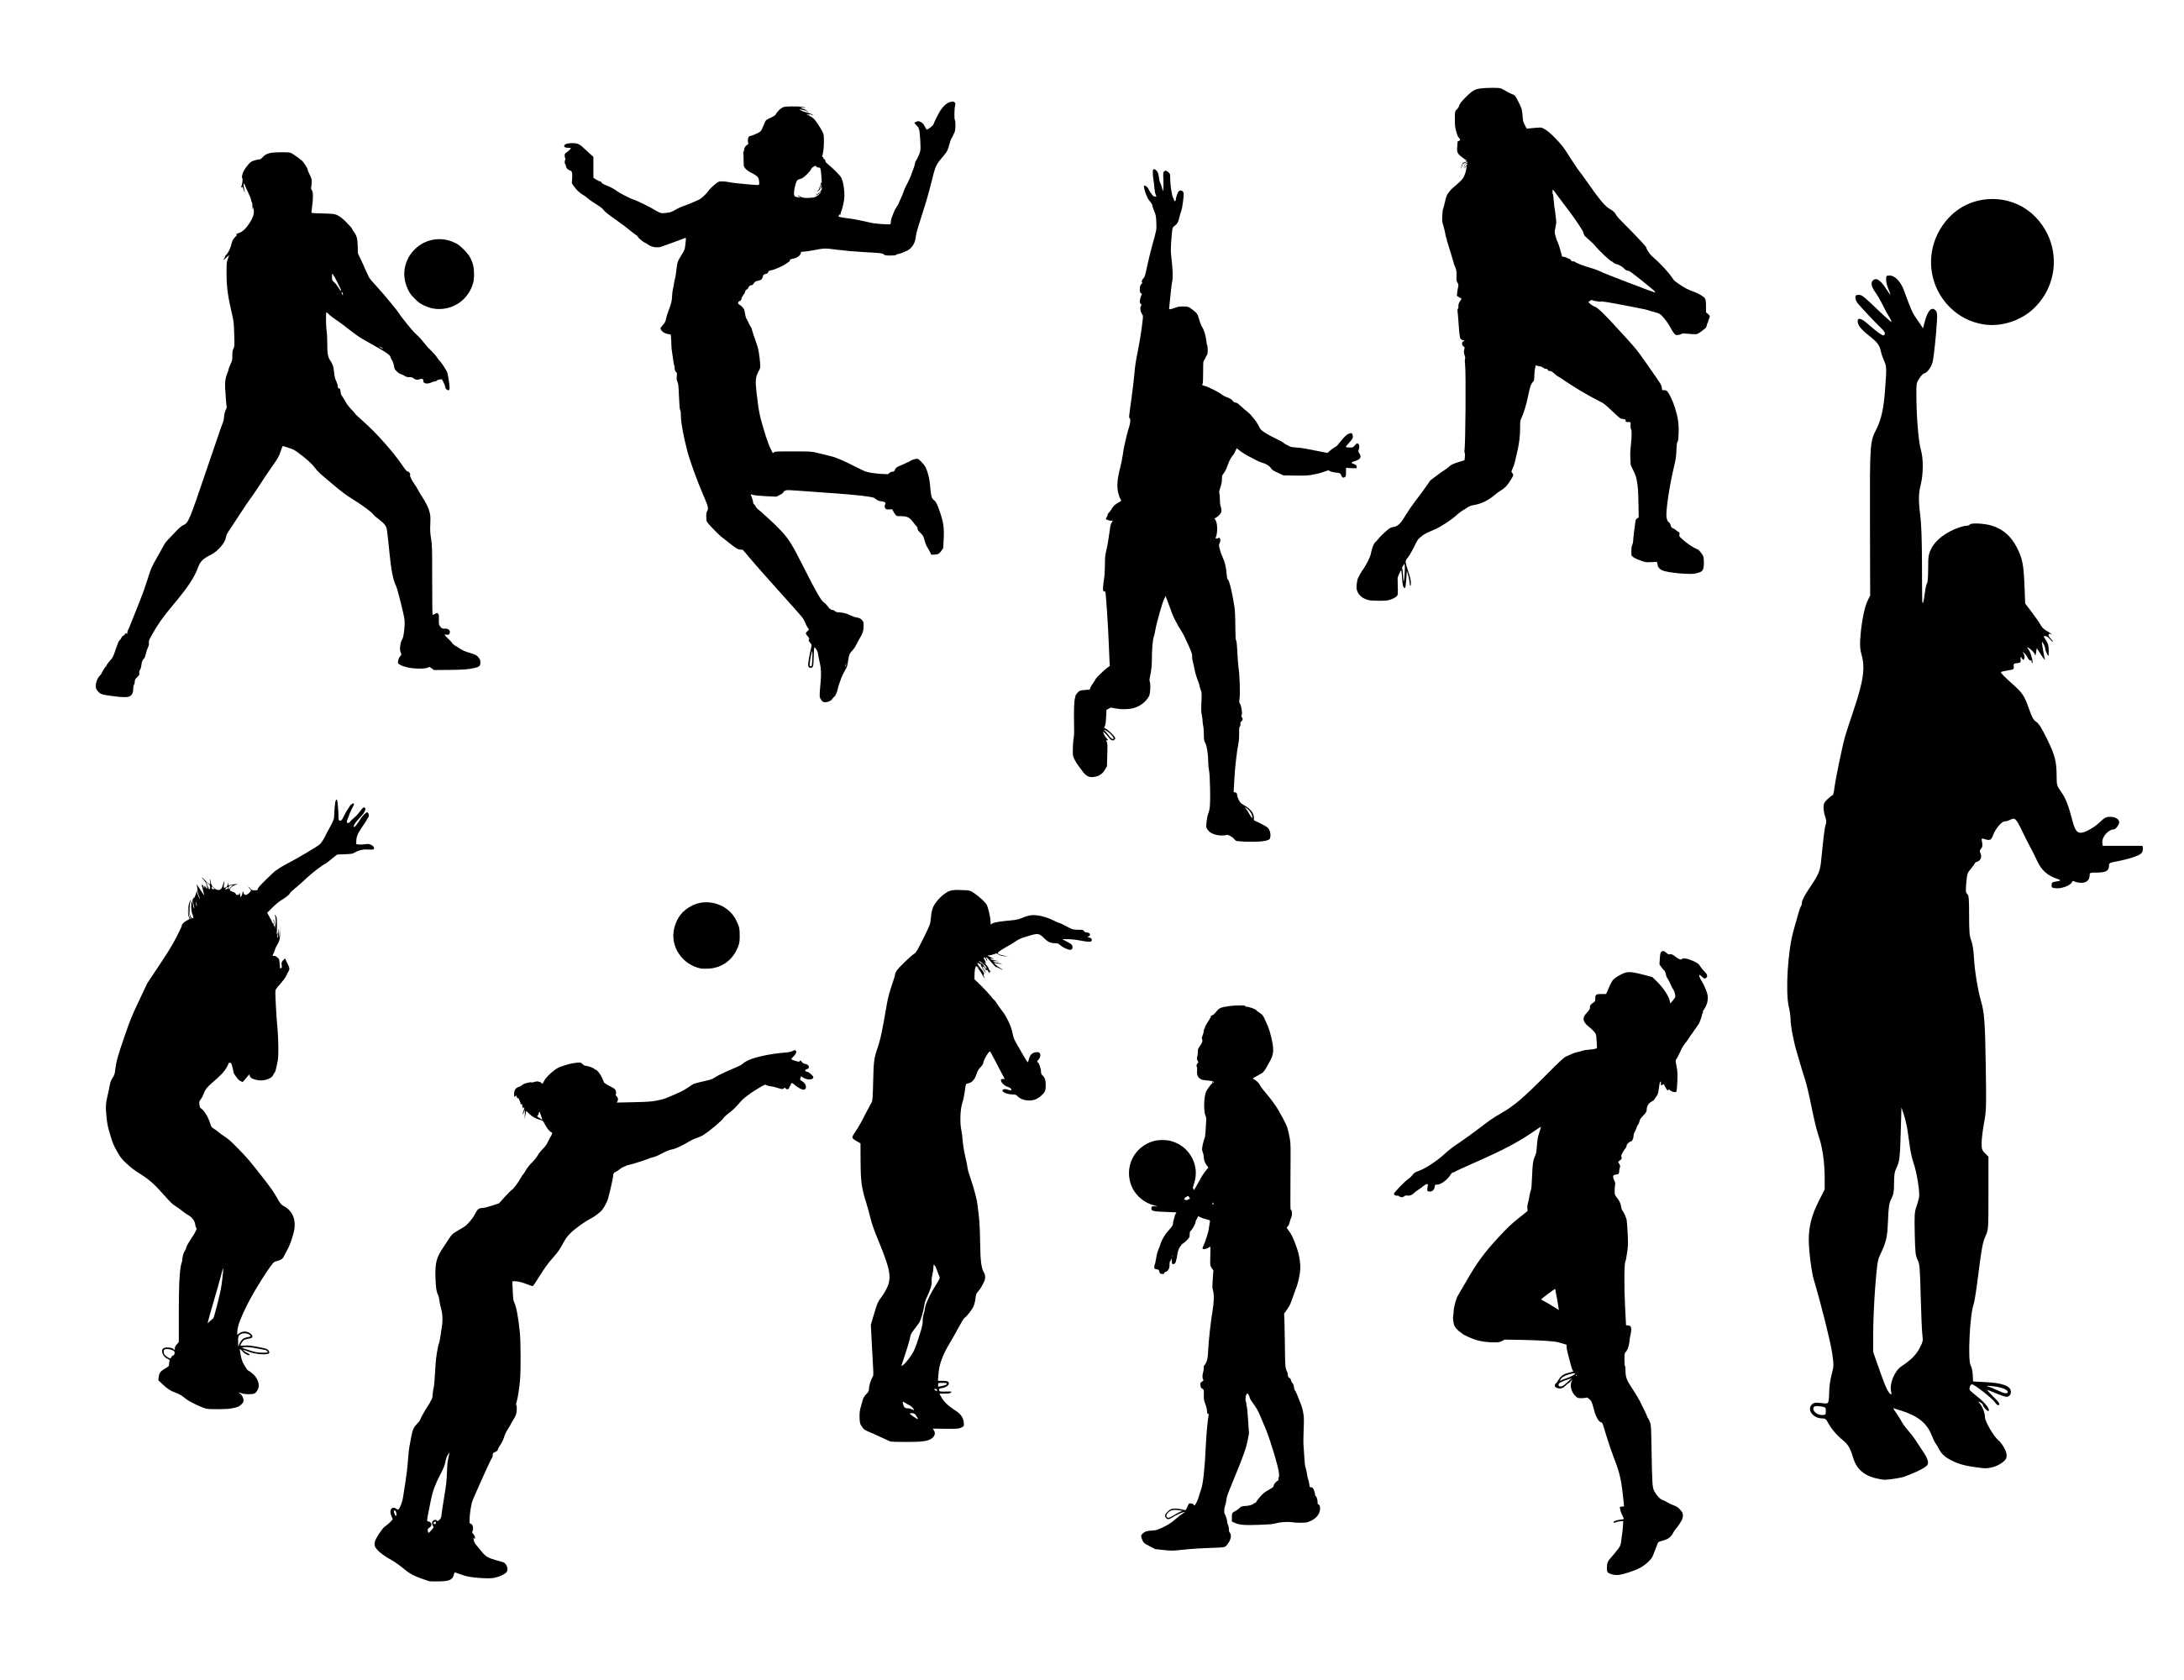 10-volleyball-silhouette-cover.jpg